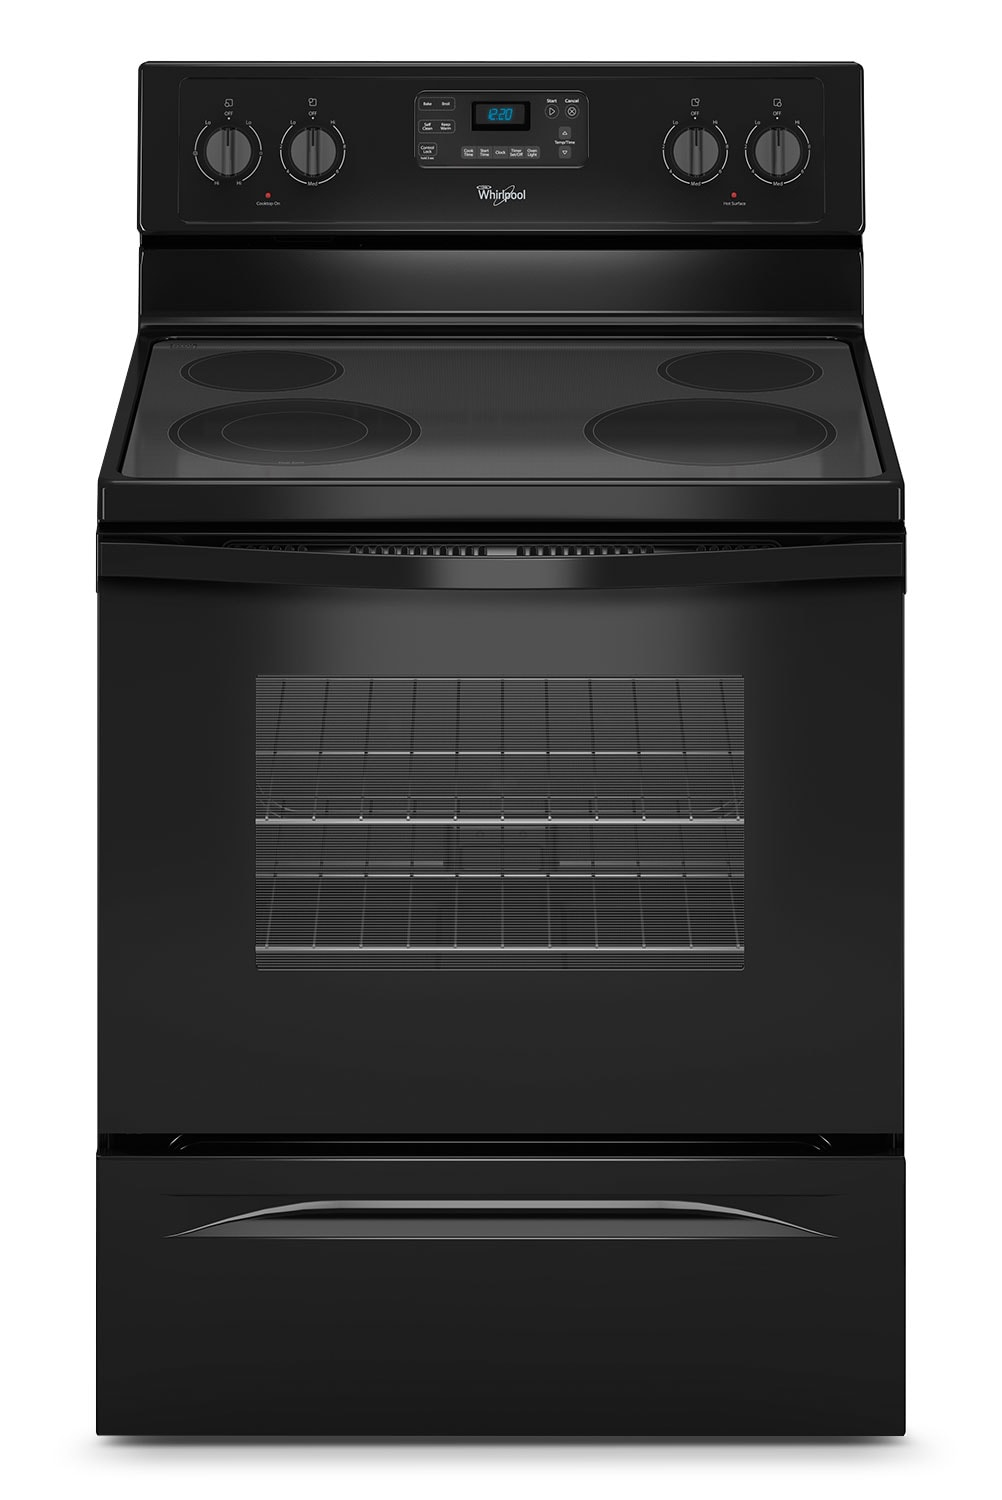 Whirlpool 5.3 Cu. Ft. Freestanding Electric Range – YWFE515S0EB